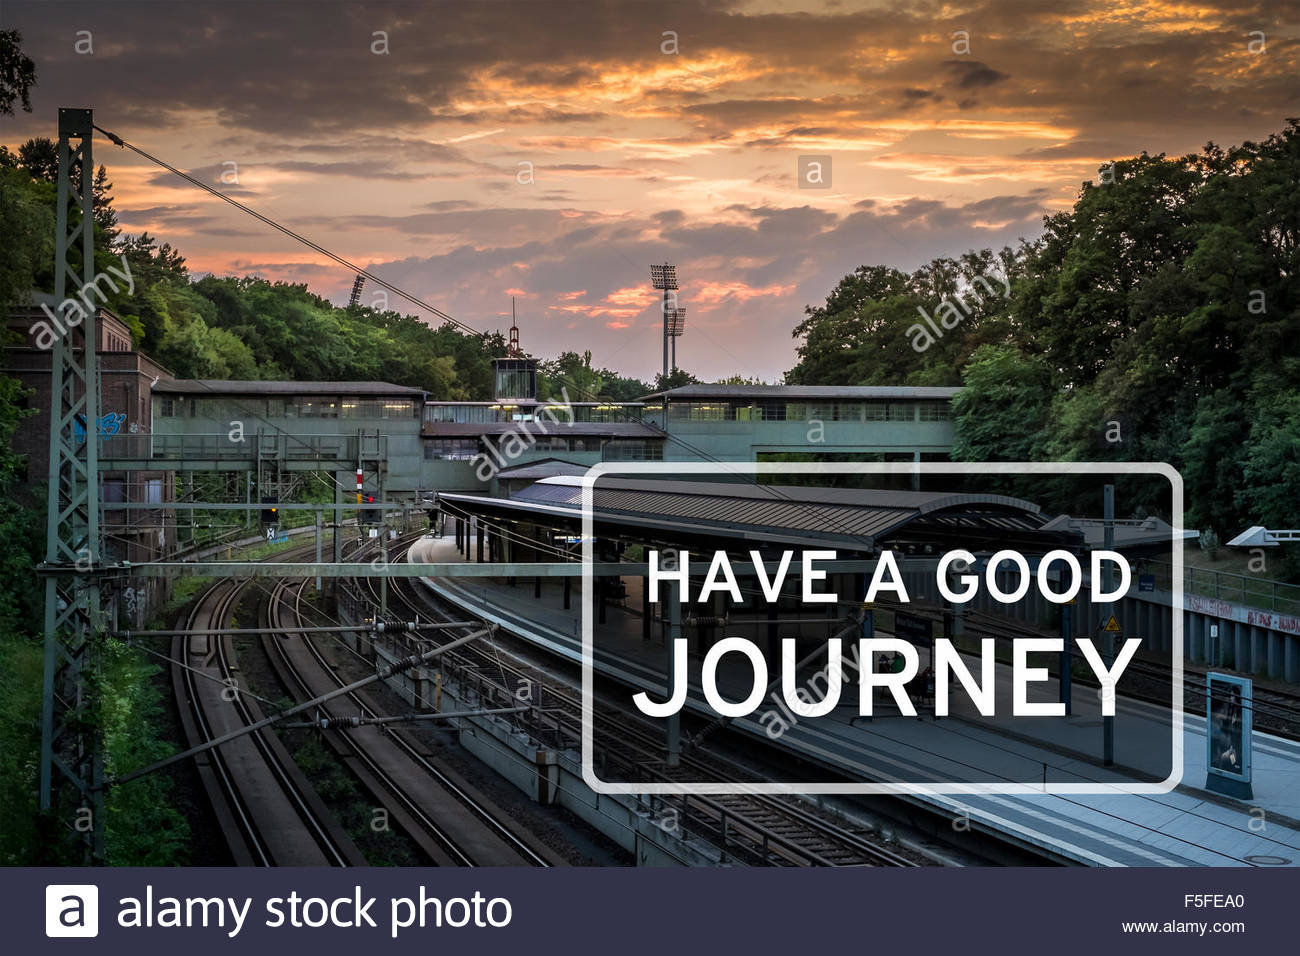 Have a good journey - Stock Image